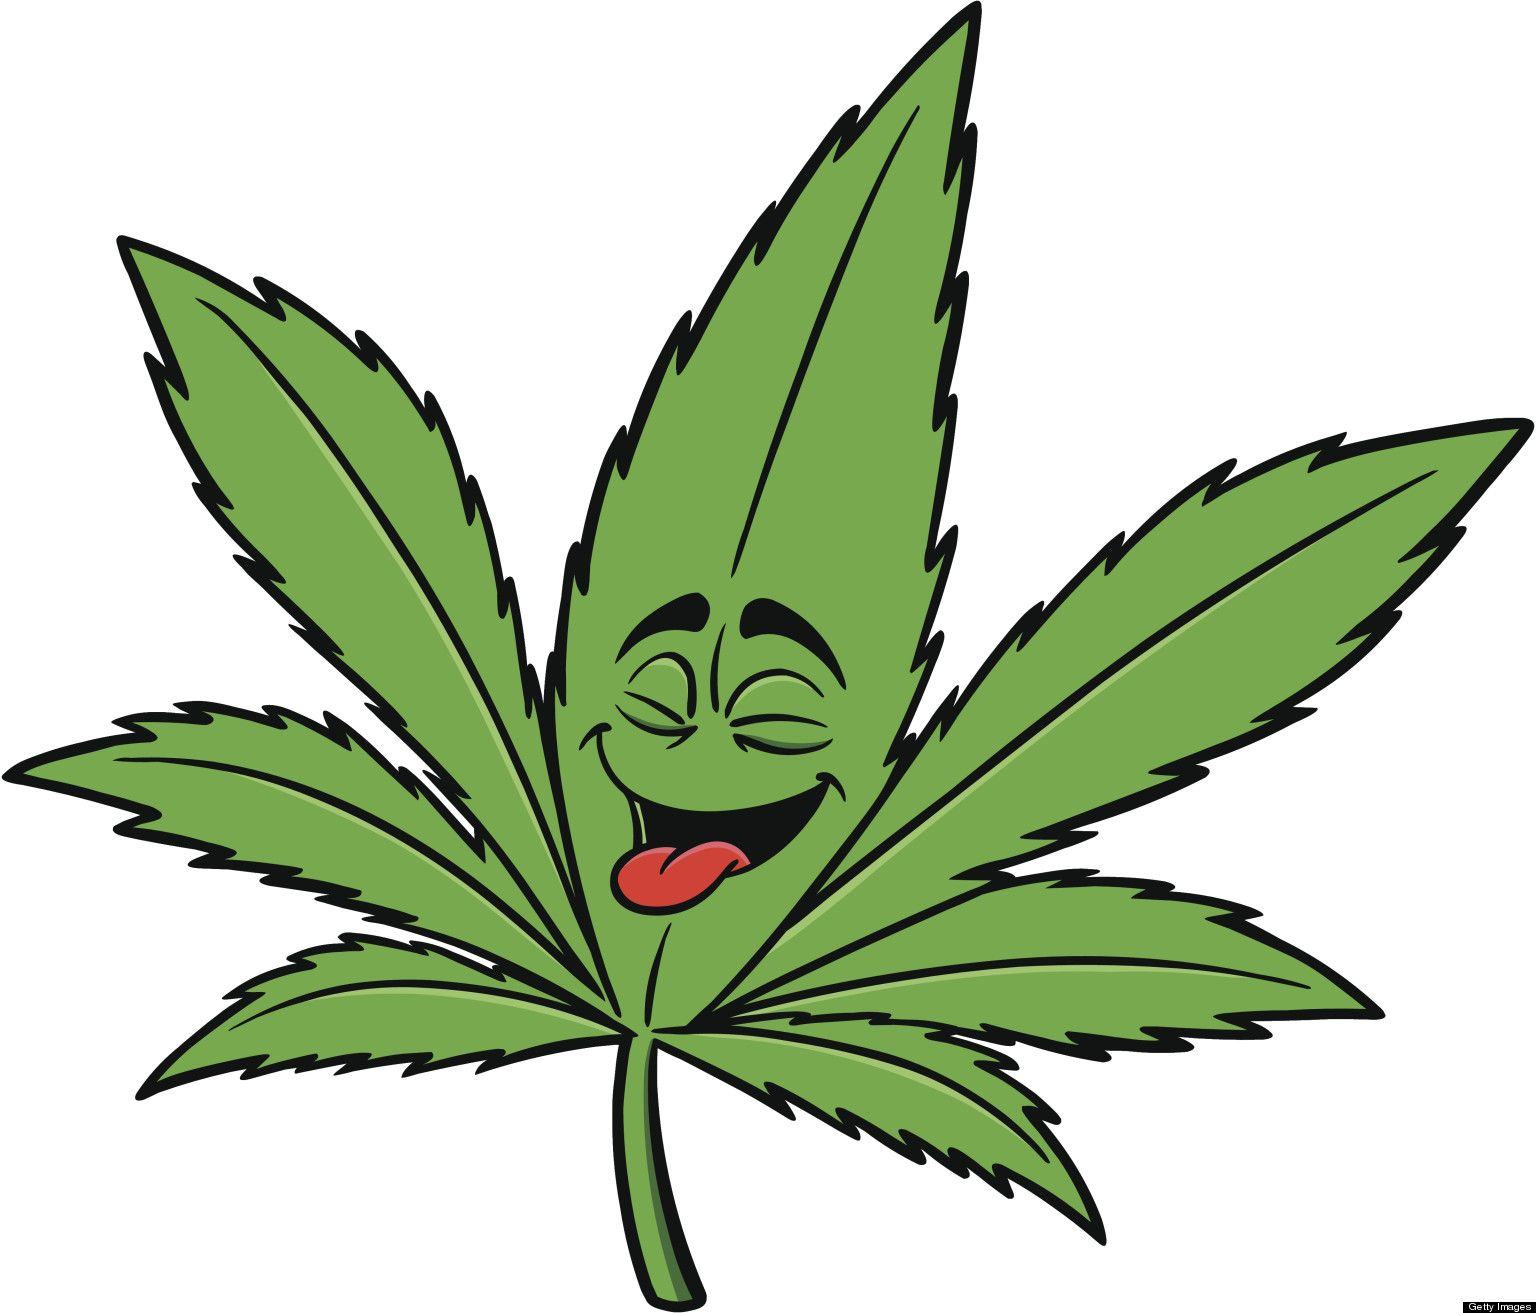 Weed bud clipart graphic freeuse library Weed Art Drawings | Weed Drawings | DIY in 2019 | Weed ... graphic freeuse library